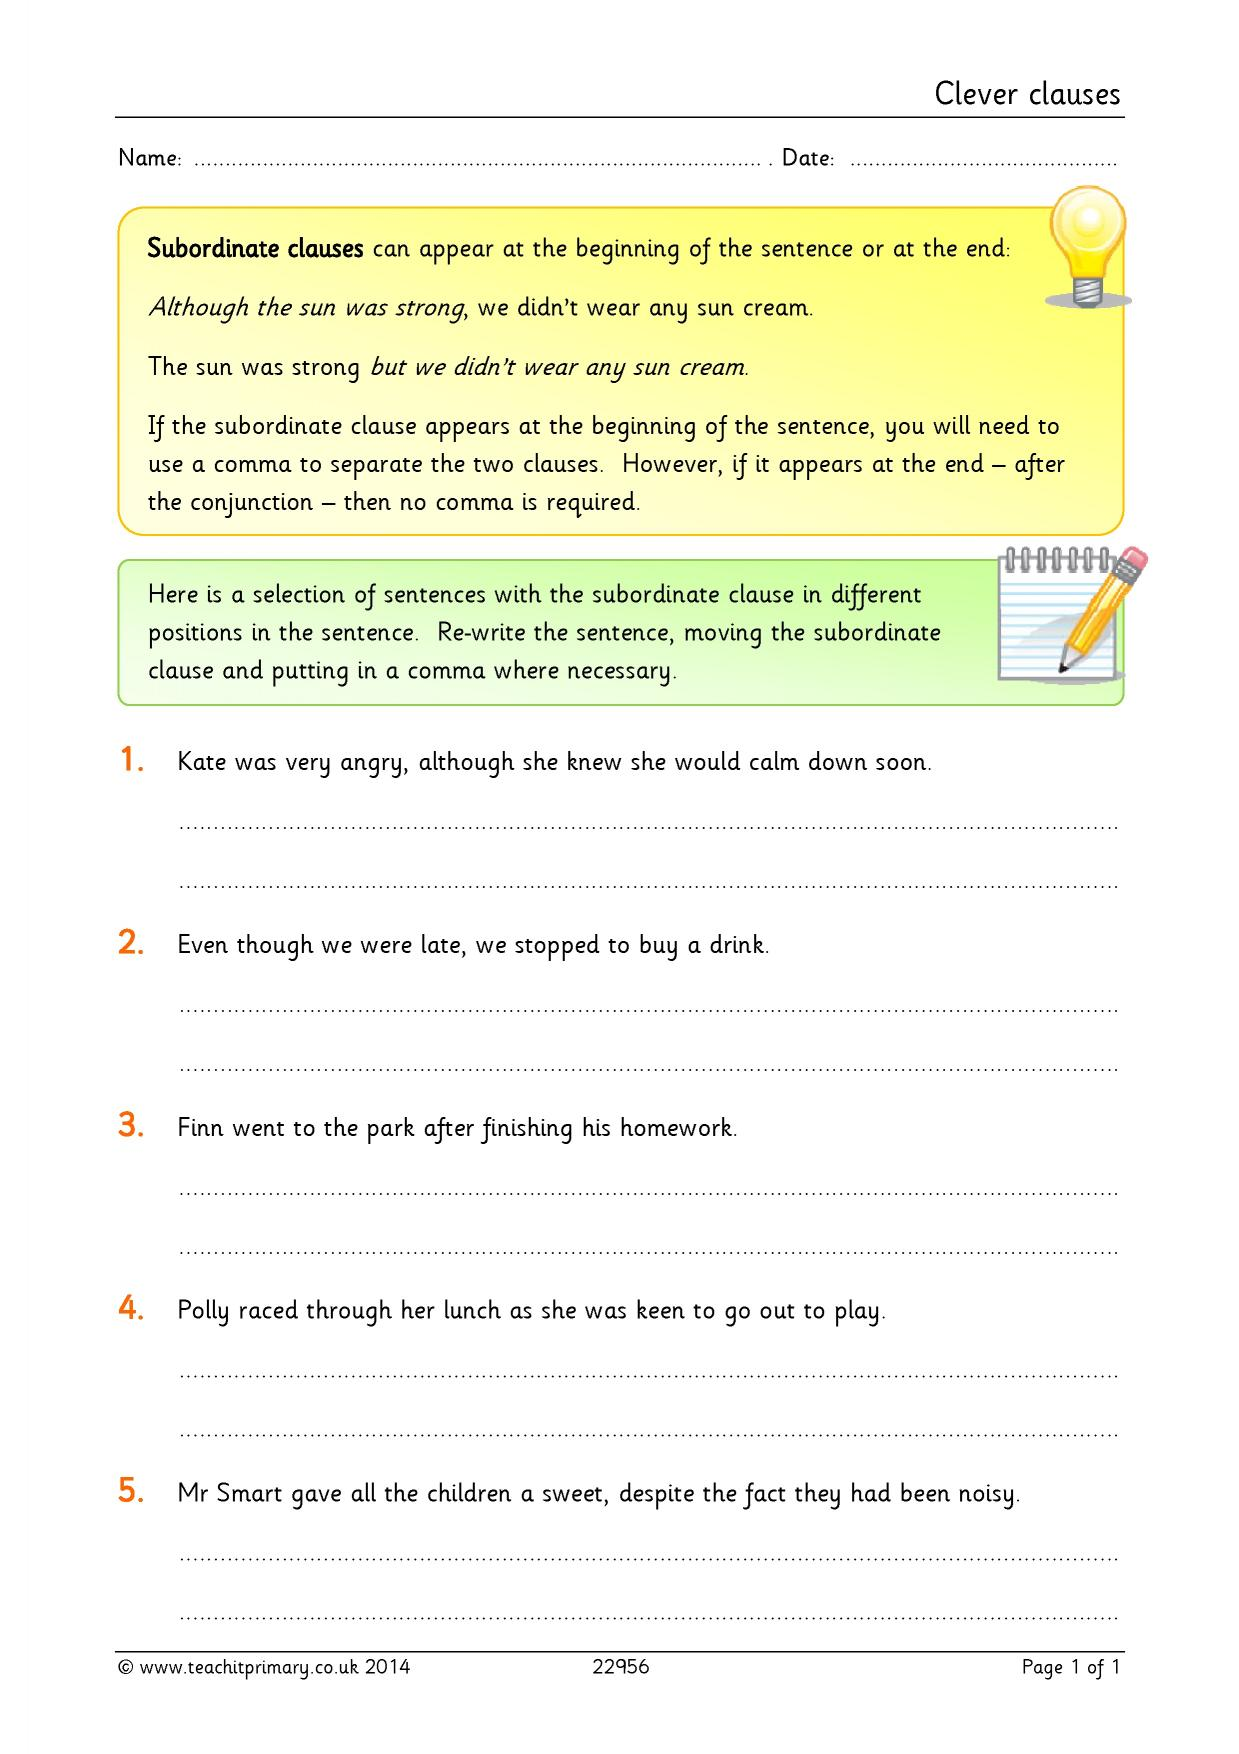 KS2 Complex sentences – Subordinate Clauses Worksheet